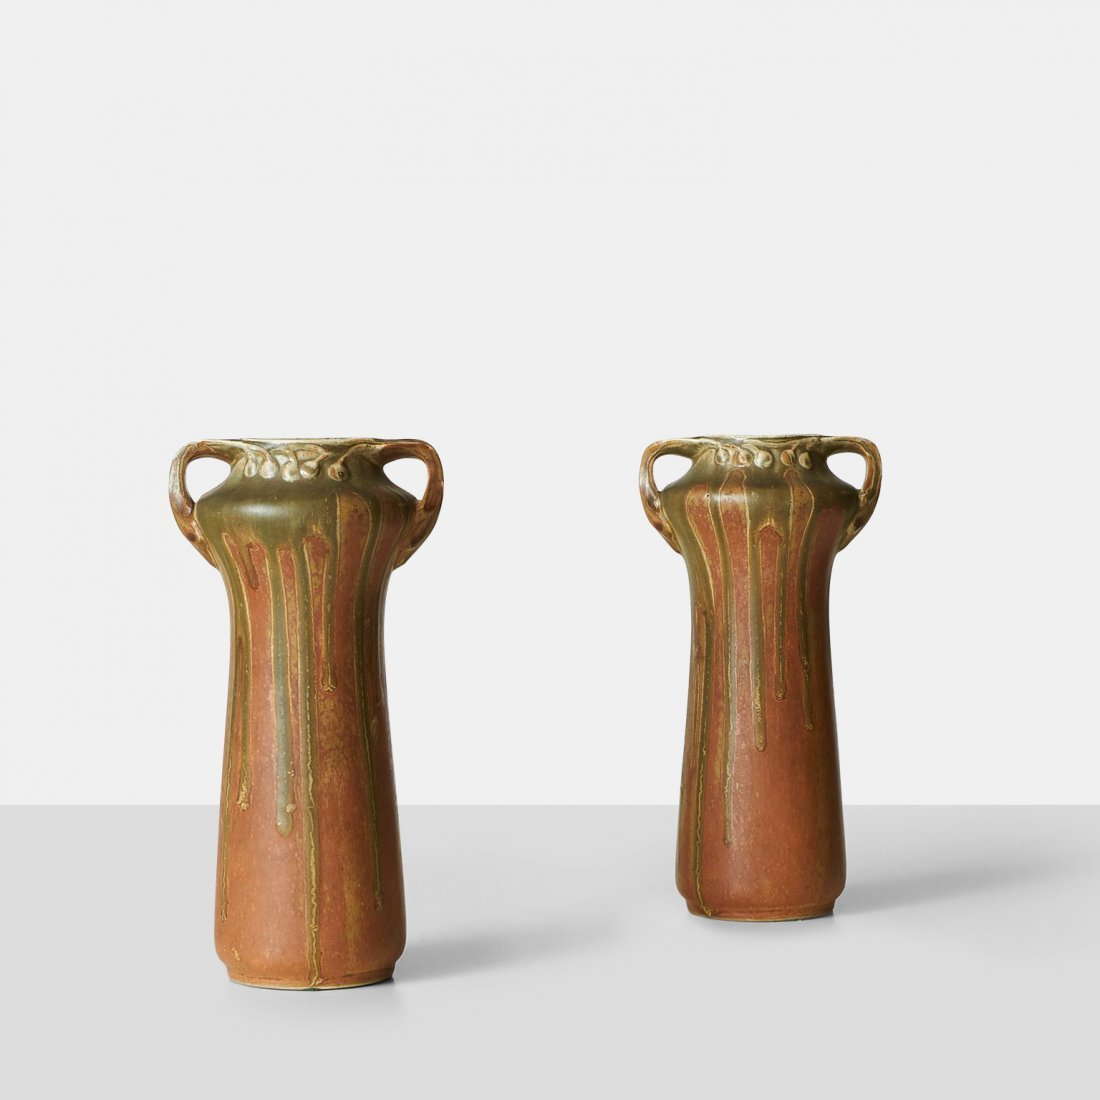 Guillaume Ceramics, Pair of Earthenware Vases